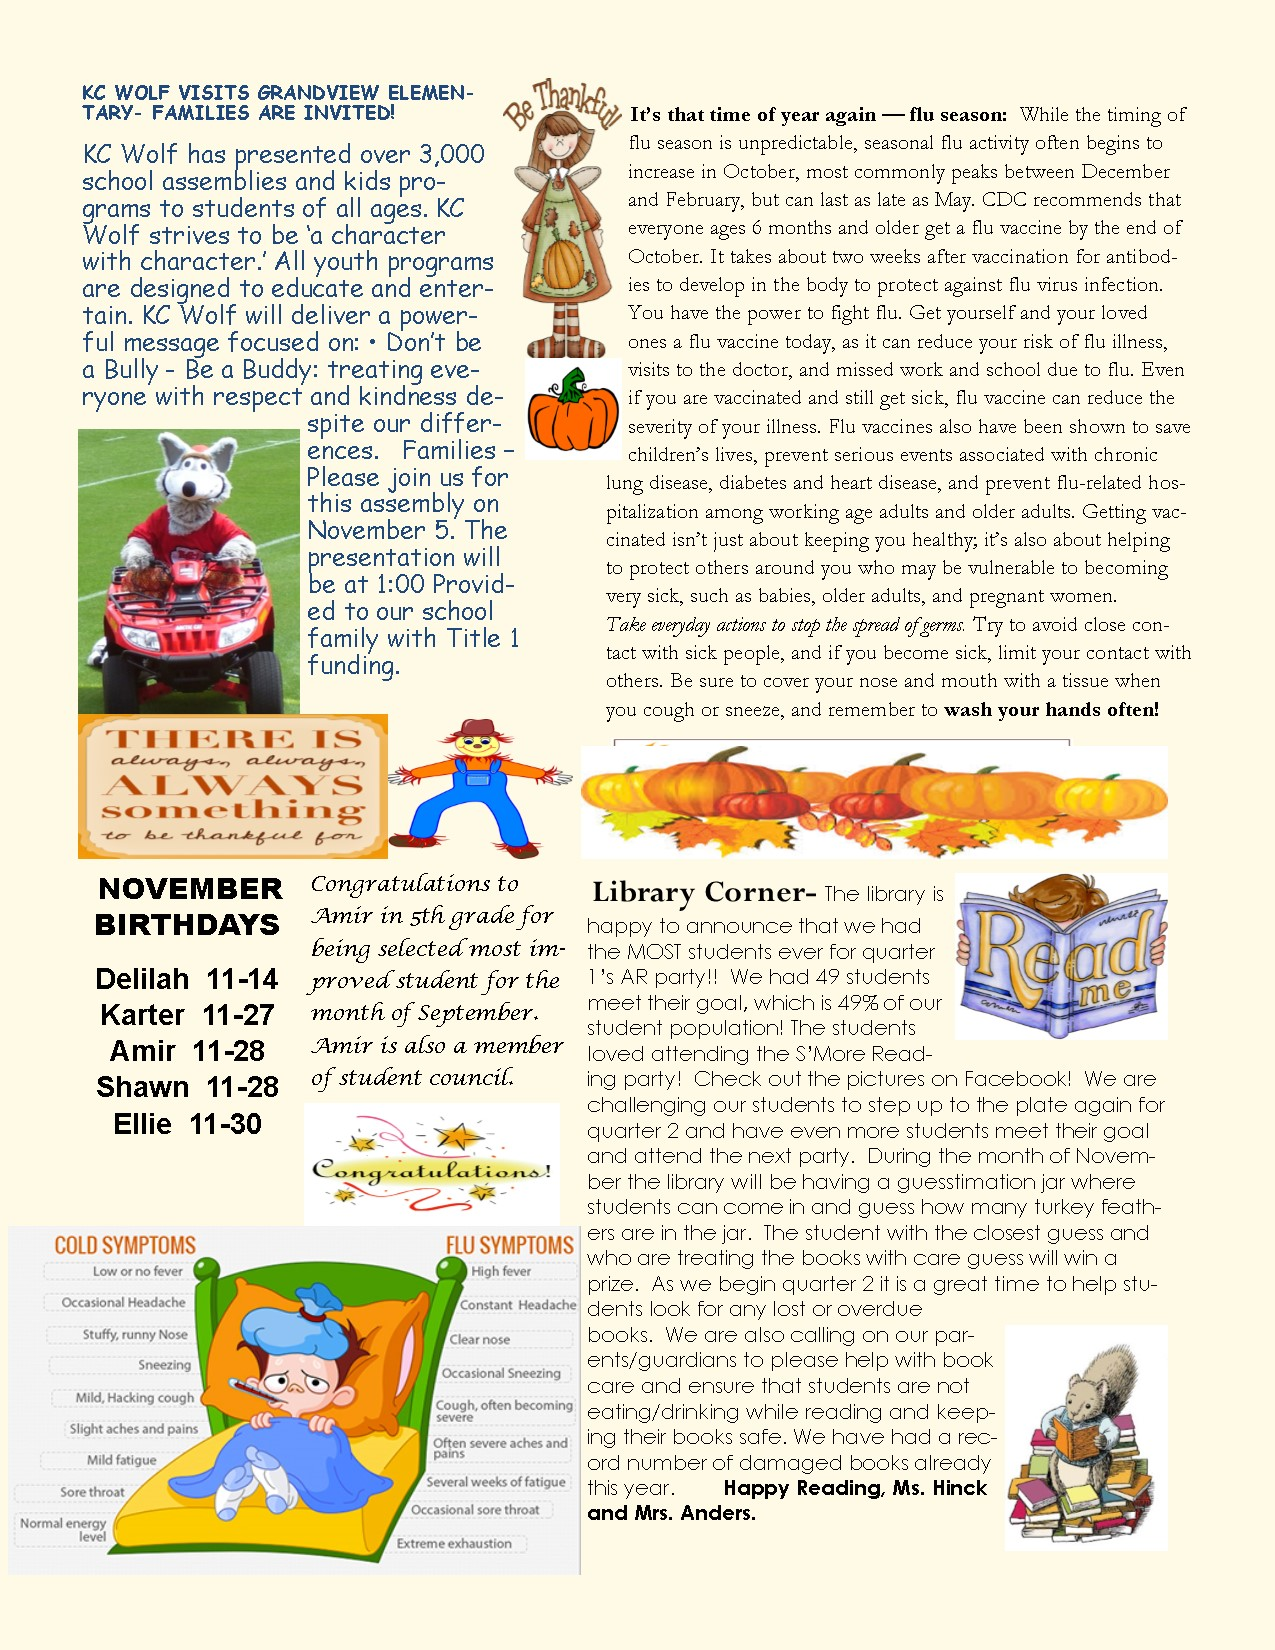 November newsletter: see attached information